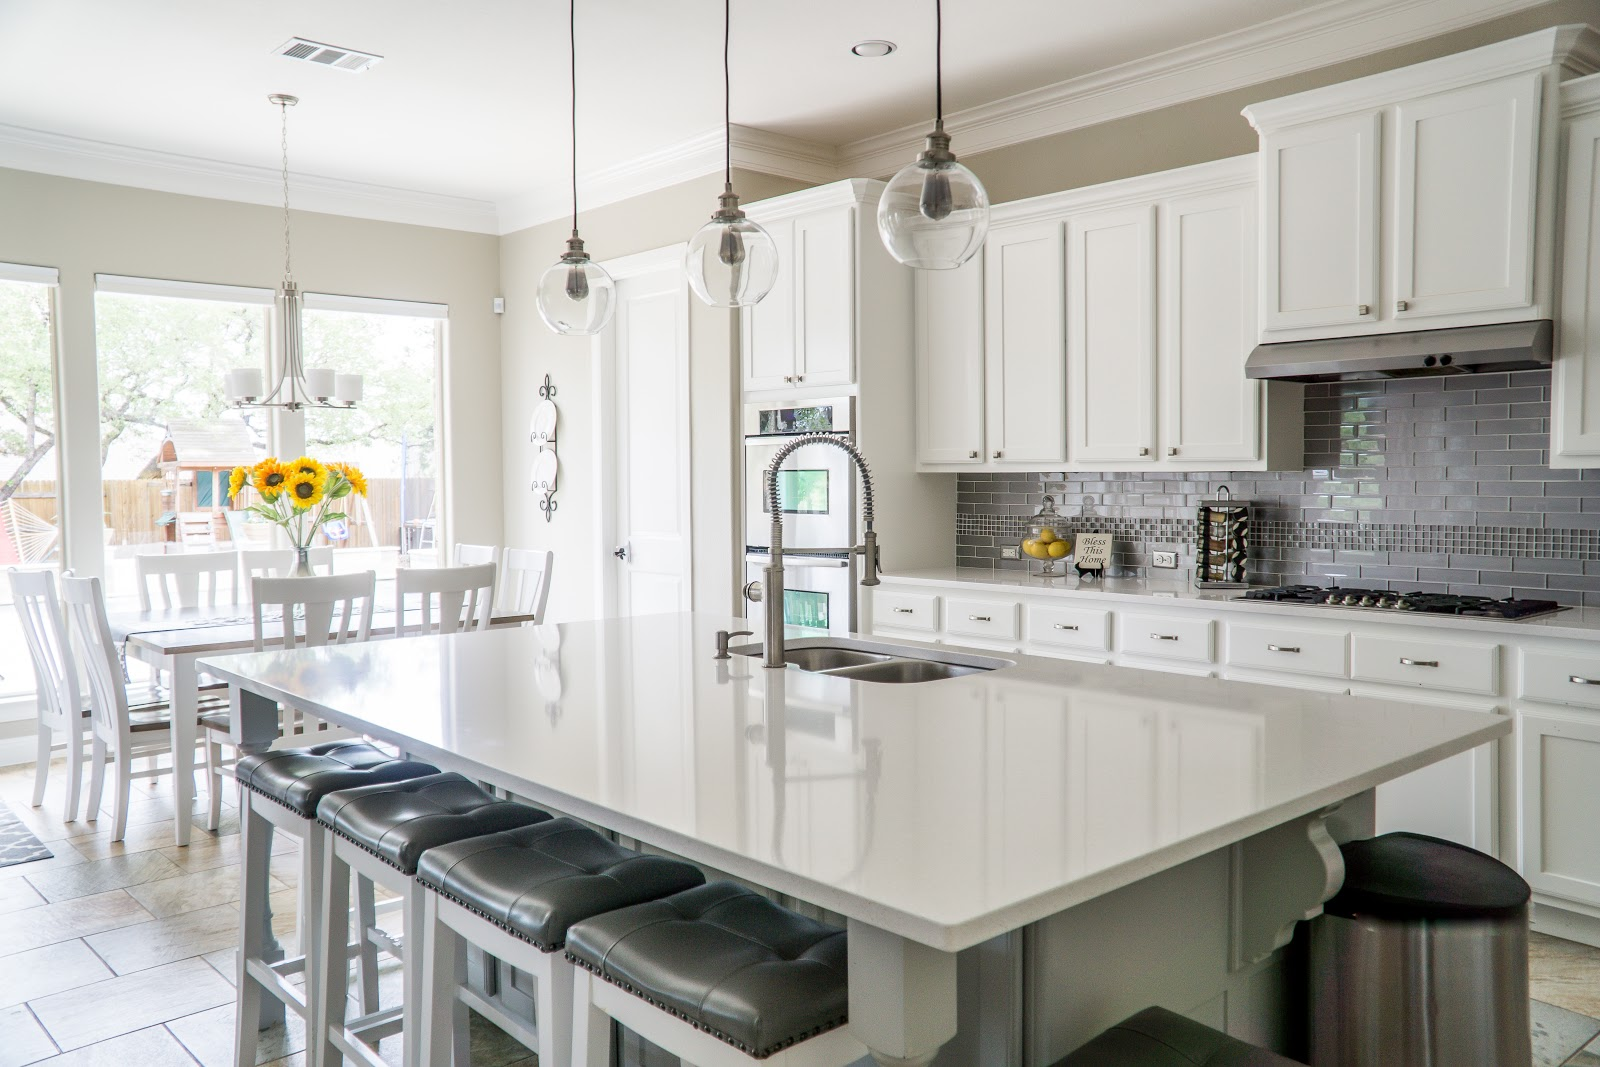 5 Tips To Get Your Kitchen Organized